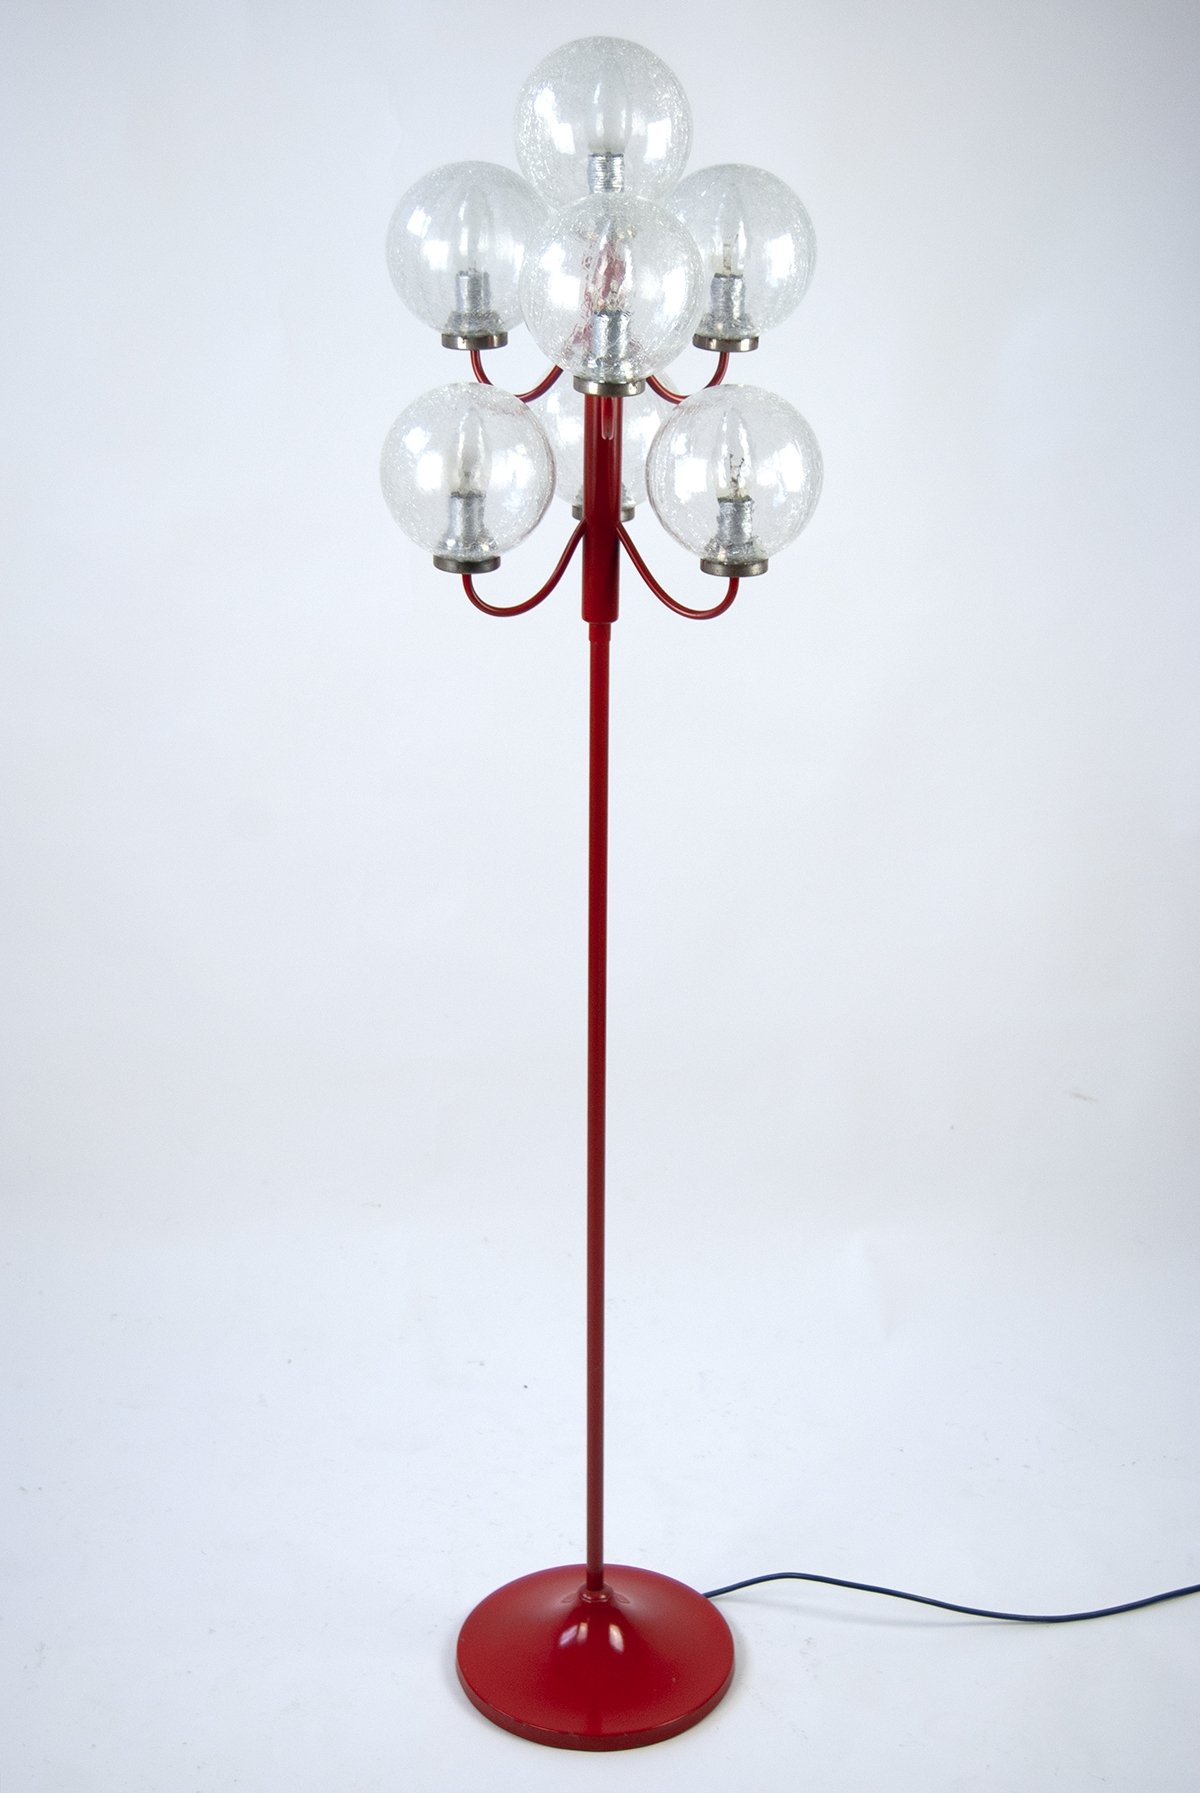 Vintage Red Floor Lamp By Kaiser Leuchten From 1960s With 7 Glass Balls 86535